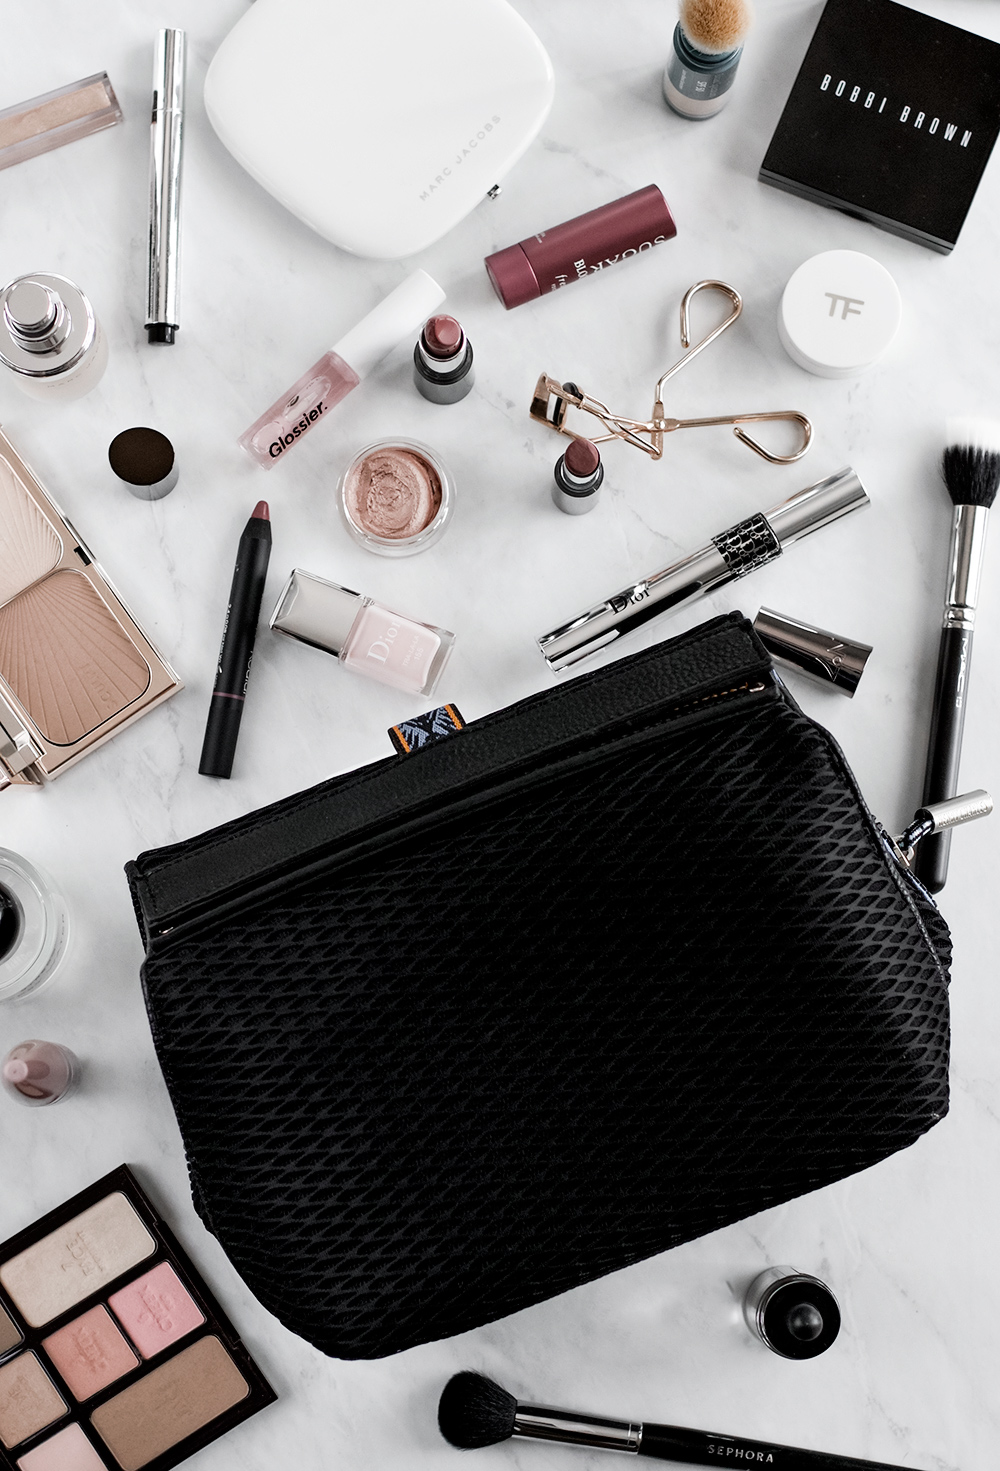 What's in my makeup bag: April